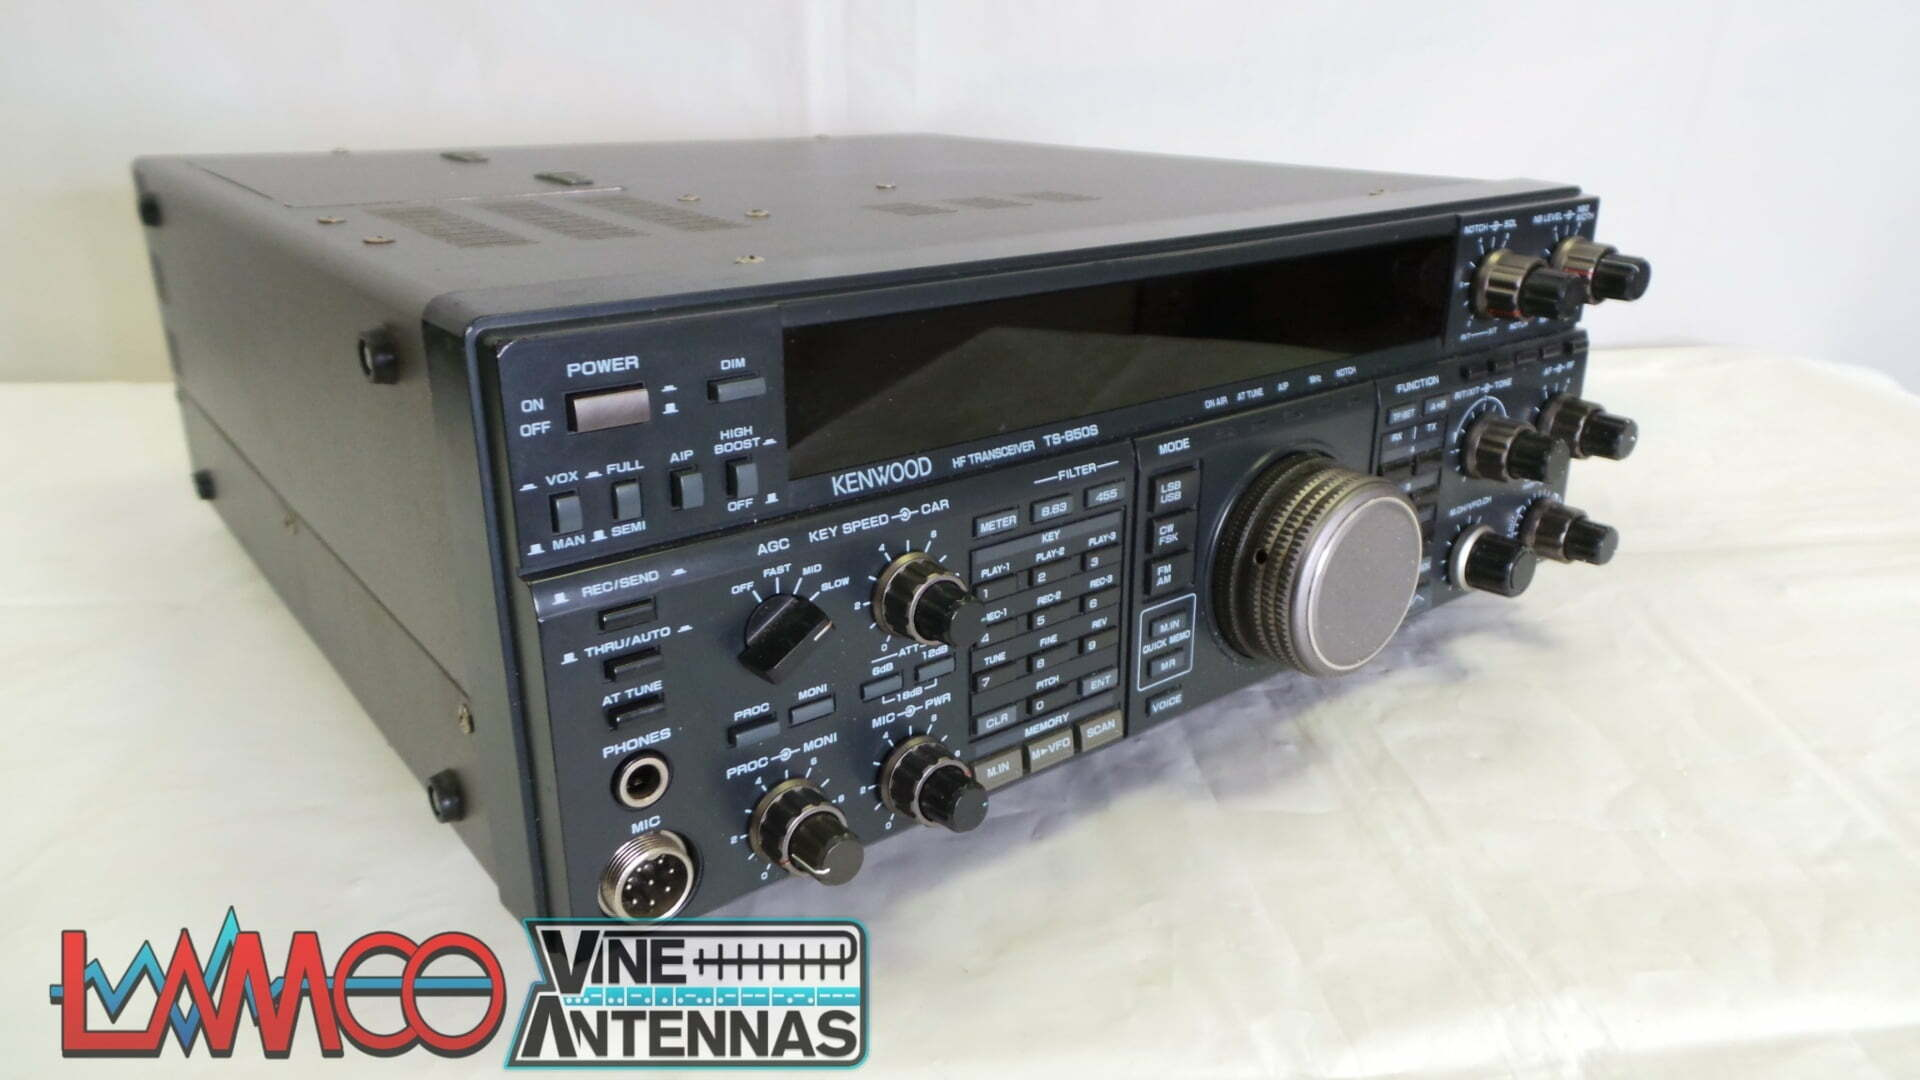 Kenwood TS-850 Sold As Seen No Warranty Use As Spares or Repairs Junksale Barnsley